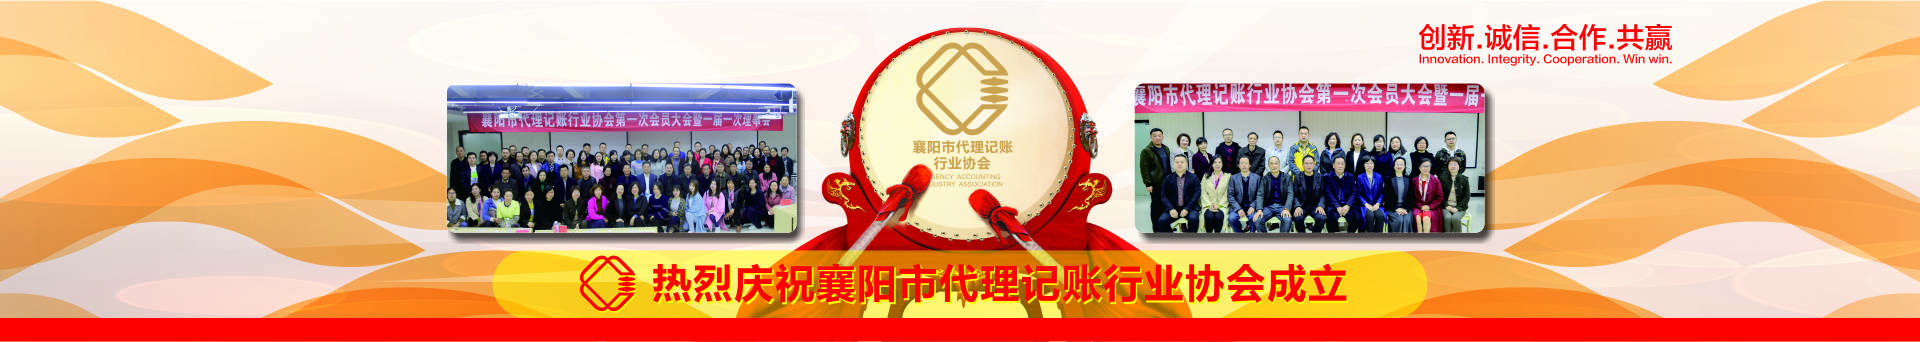 PC-首页banner2